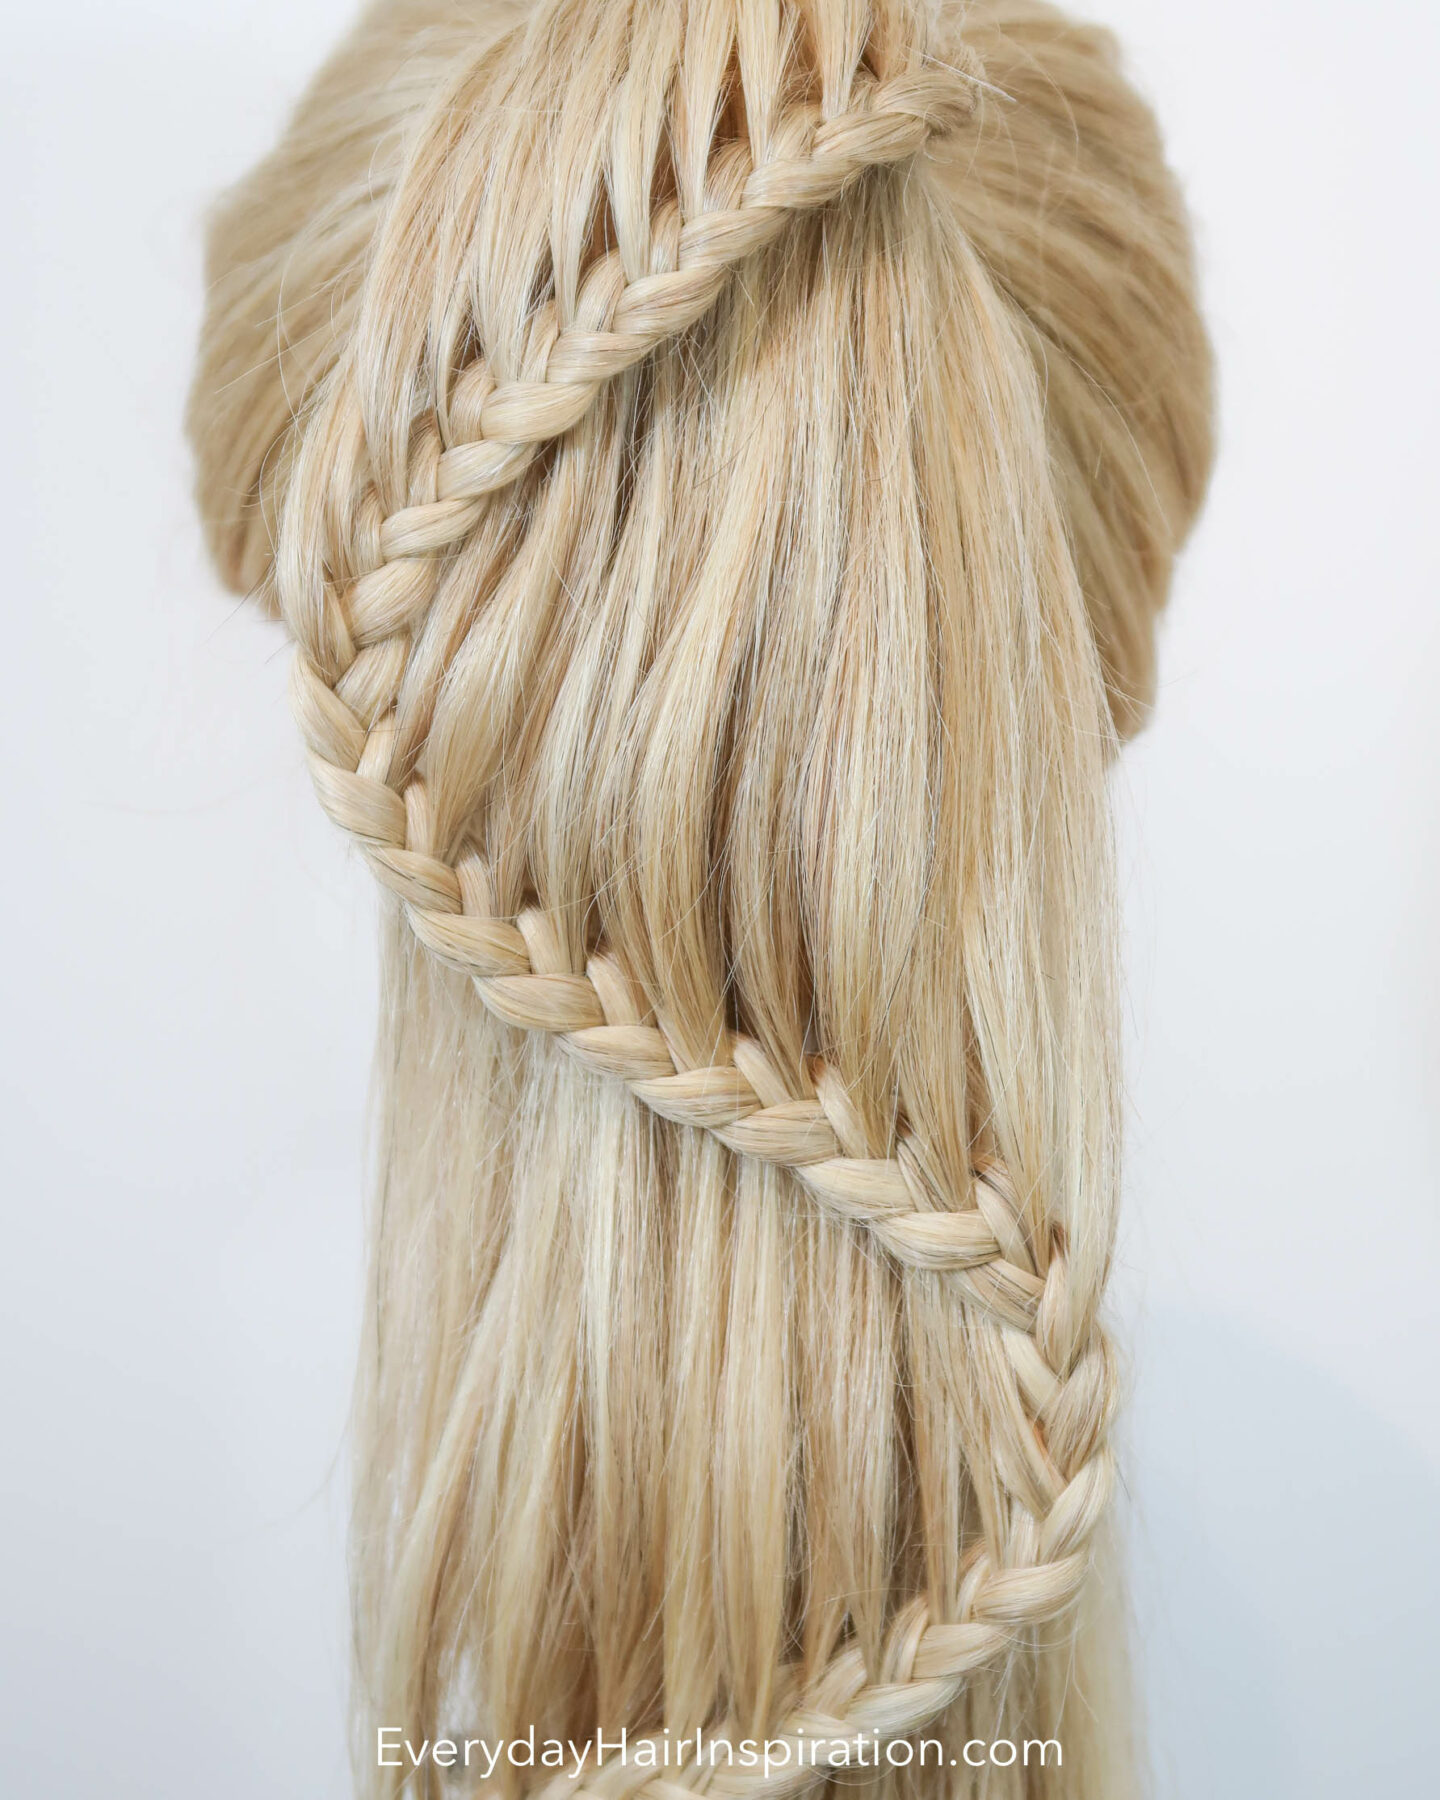 """Blonde hairdresser doll seen from the back with a high ponytail with a braid in the hair. The braid is curving like an """"s"""" shape down the hair - Close up"""